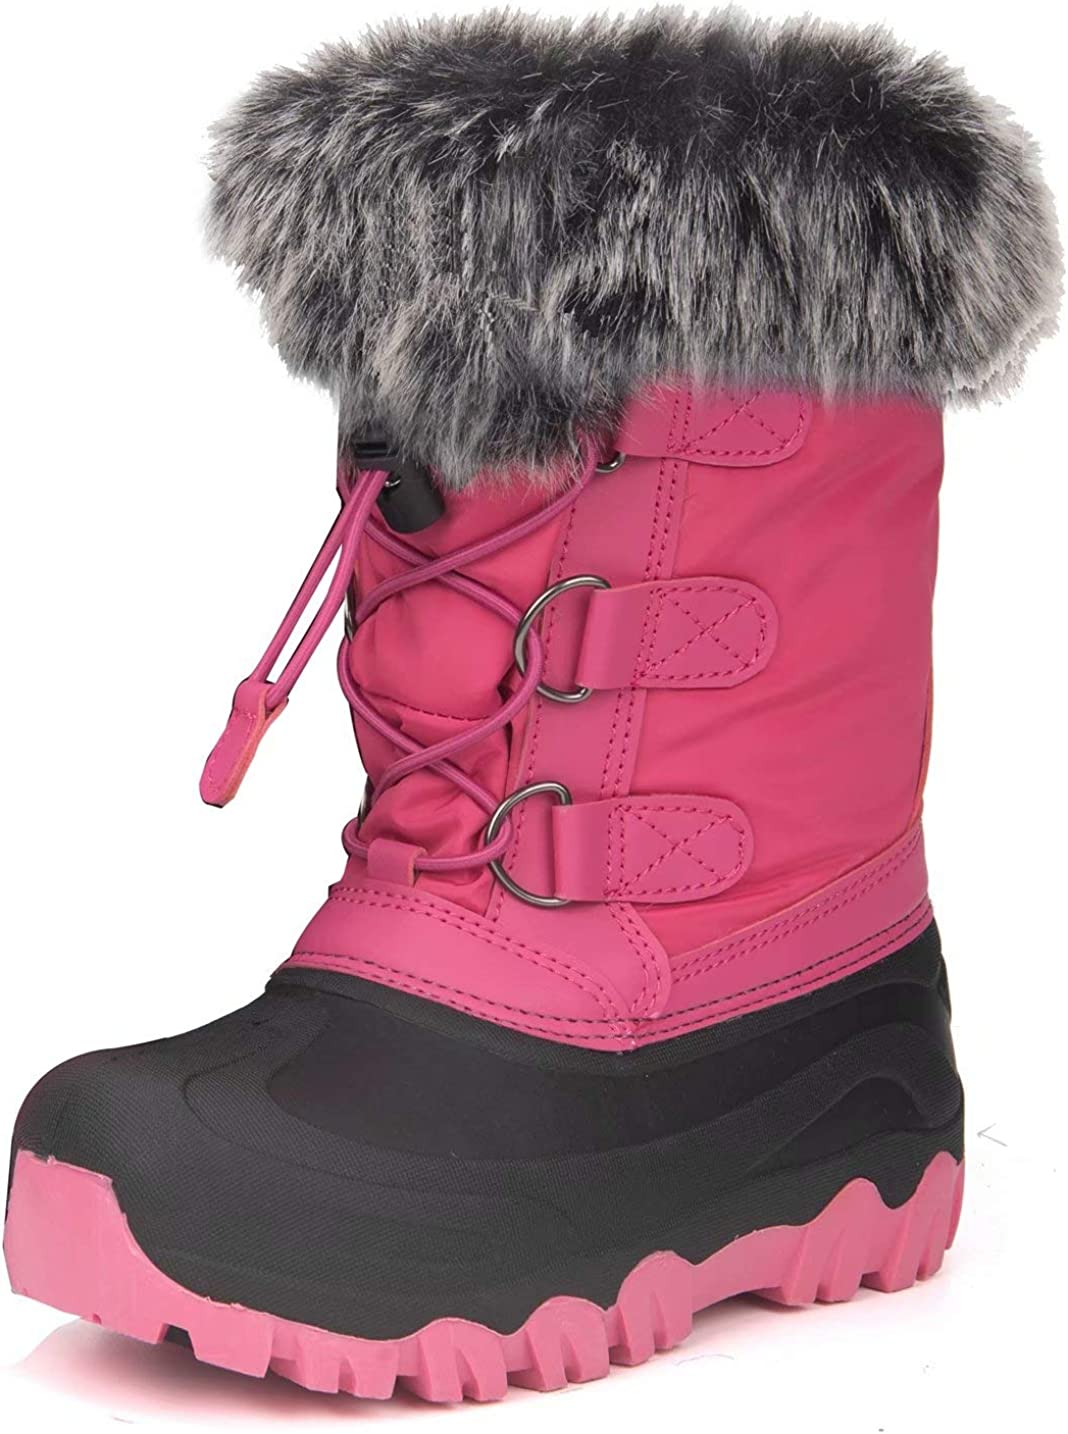 HugRain Warm Winter Max 74% OFF Snow Boots with for Fur Lined Faux Ranking TOP5 Toddler K